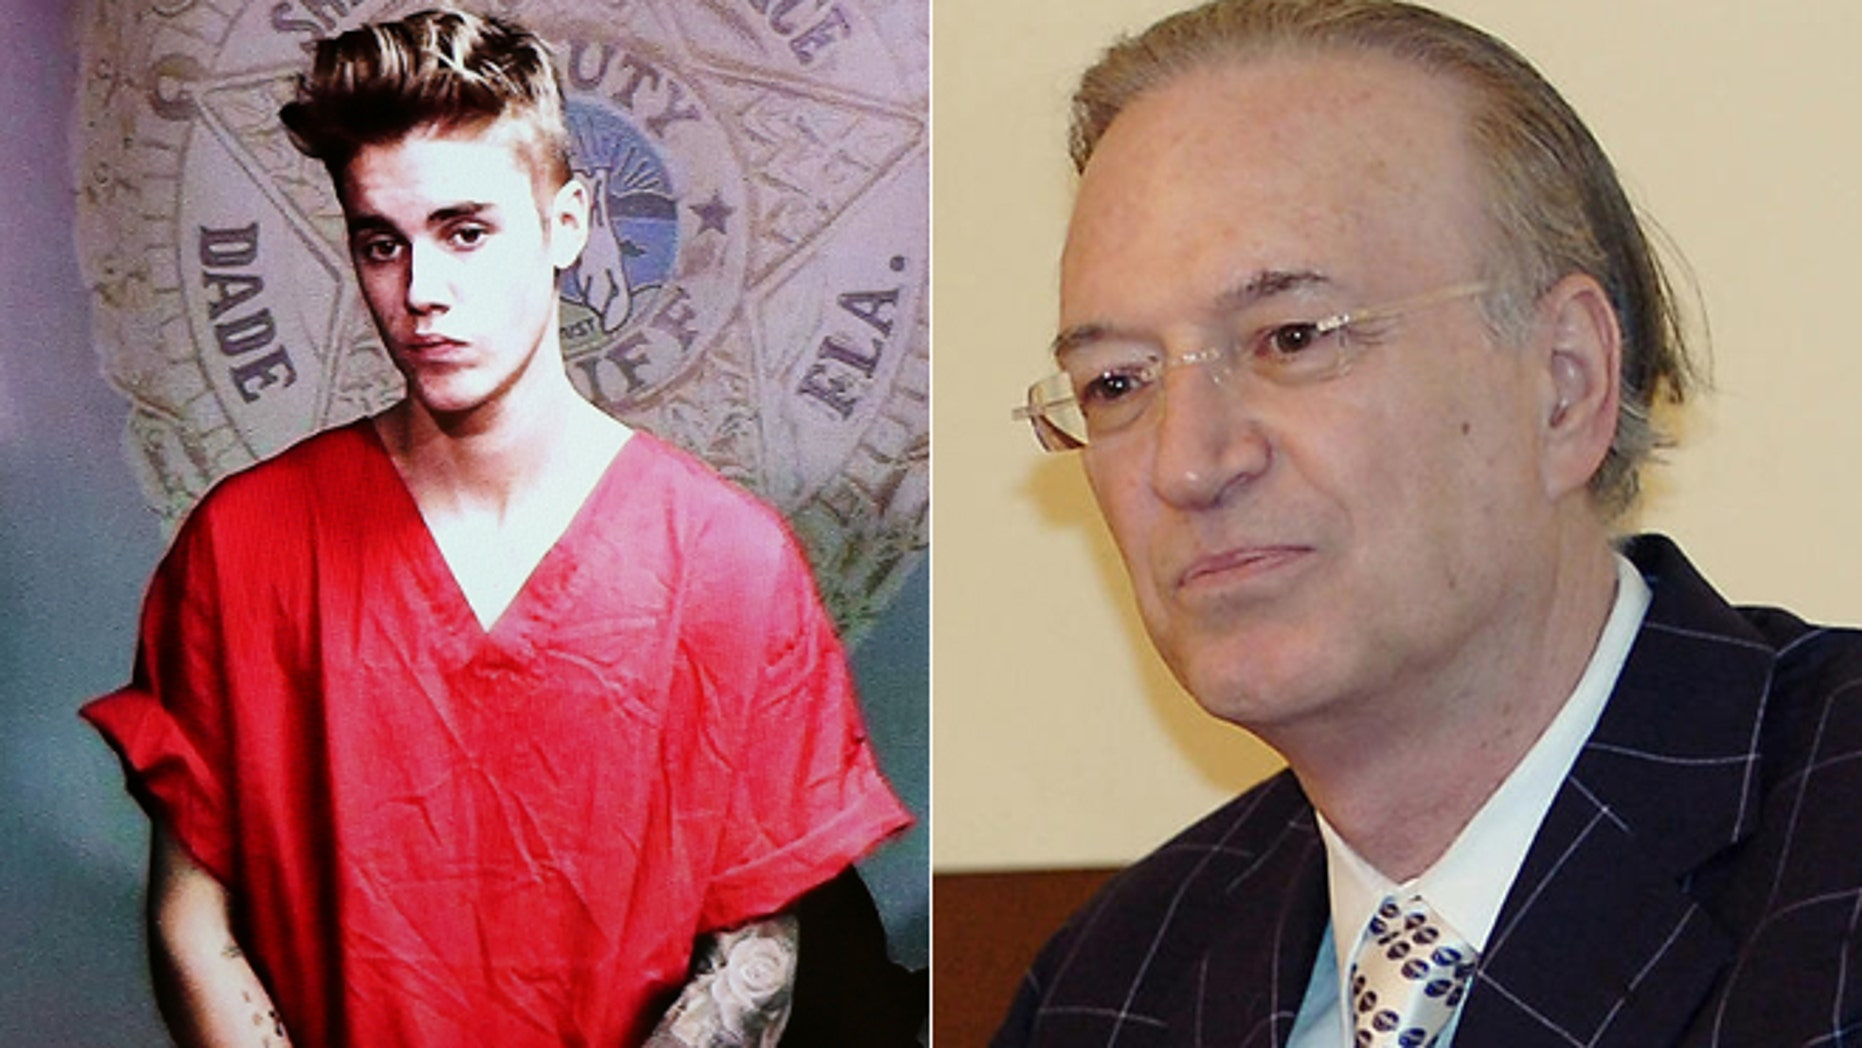 Justin Bieber appears in court via video feed, left, and attorney Roy Black is shown in a 2006 file photo, right.